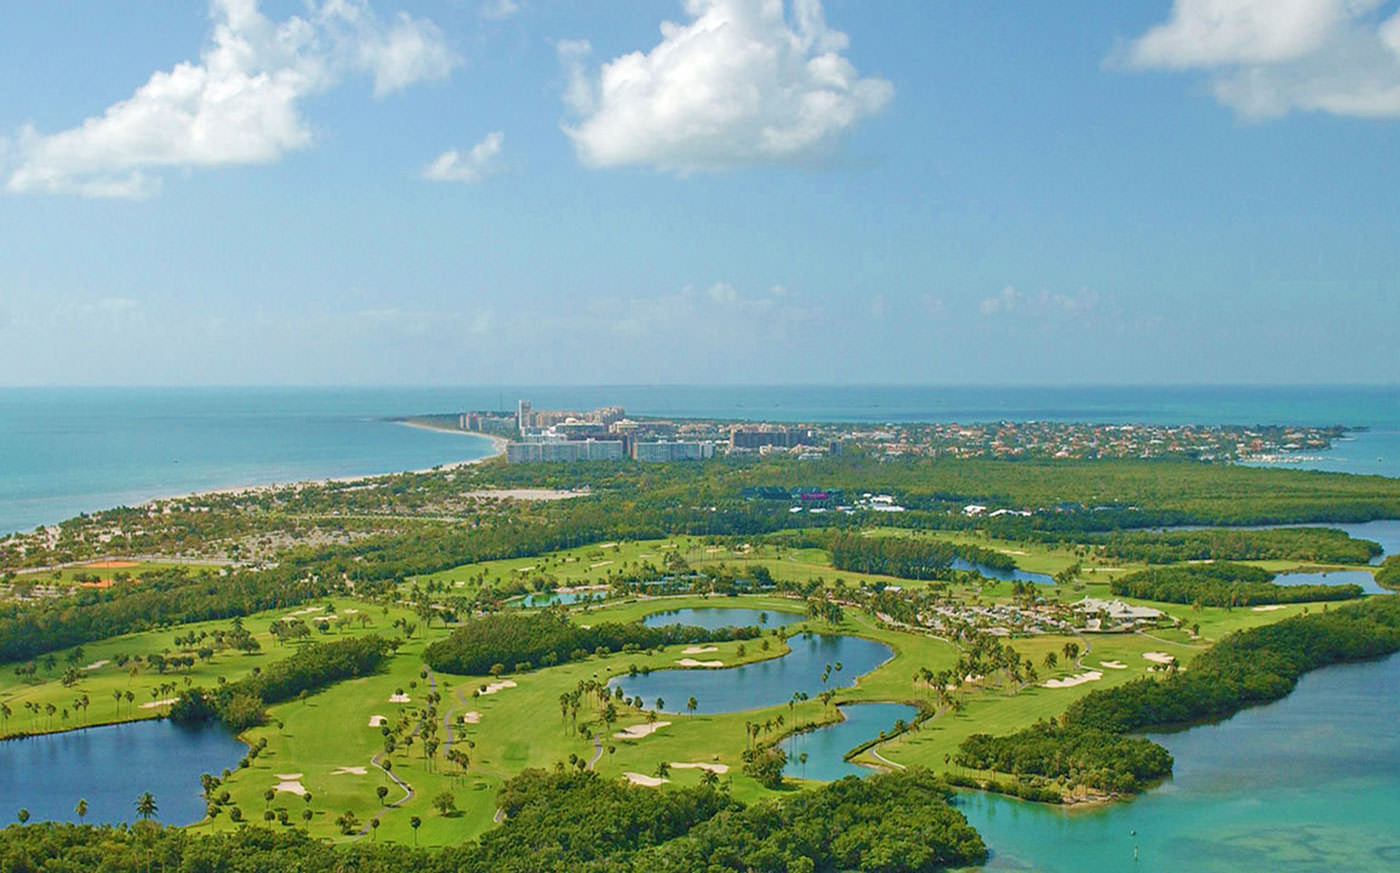 Crandon_Golf_Key_Biscayne_Miami  - casa grande